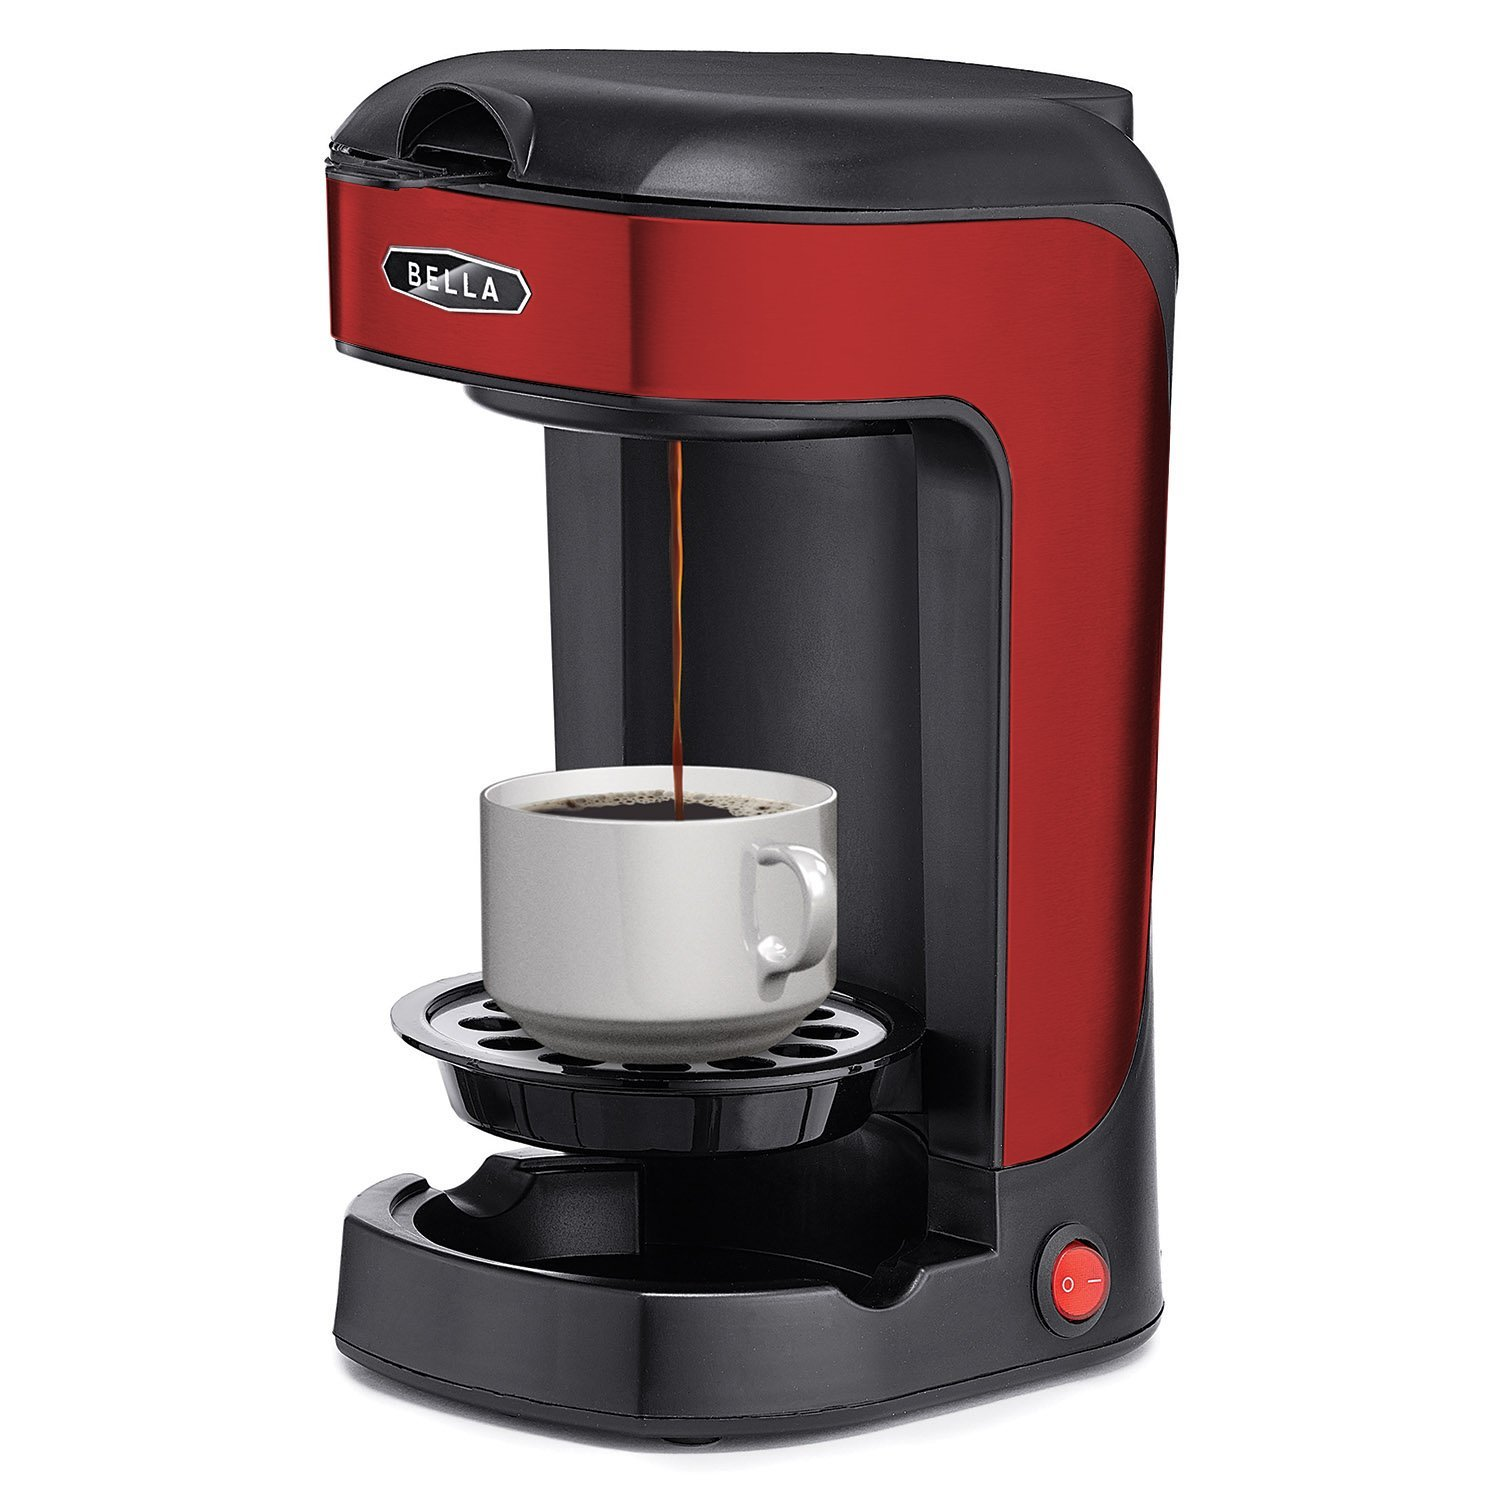 Which One Cup Coffee Maker Is The Best : Bella One Scoop One Cup Coffee Maker Best Price - Bella One Scoop One Cup Coffee Maker Review